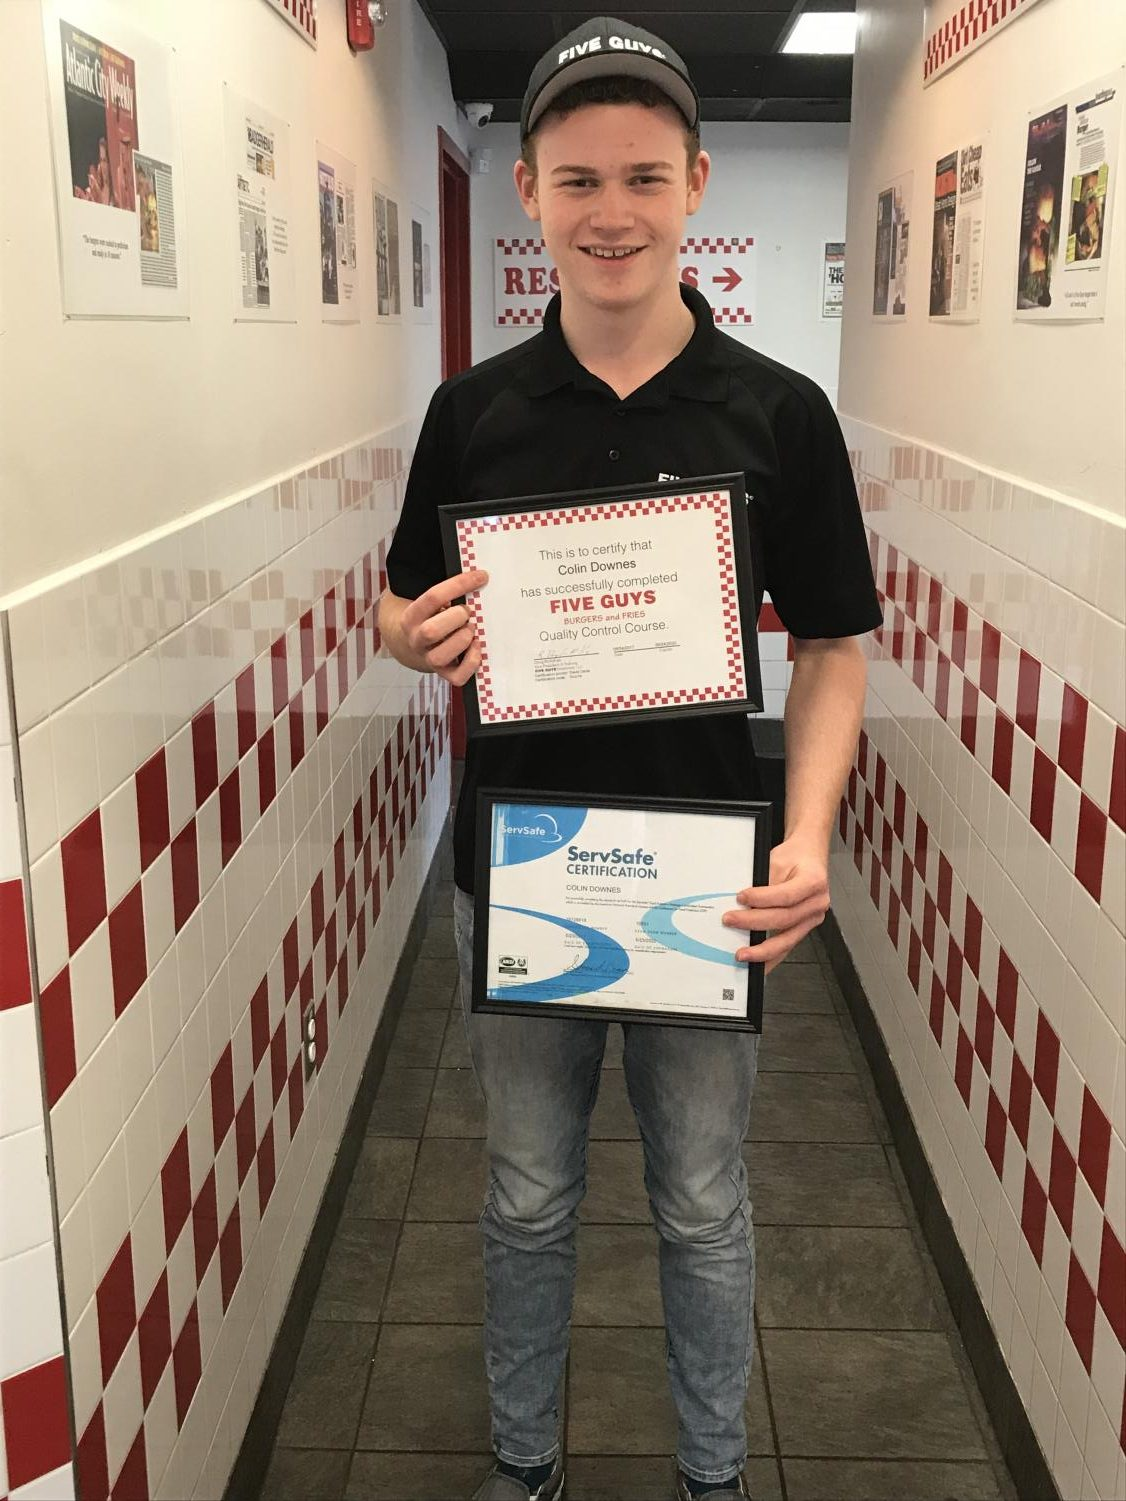 Senior Colin Downes shows off his certifications that help grant him the opportunity to be a manager at Five Guys.